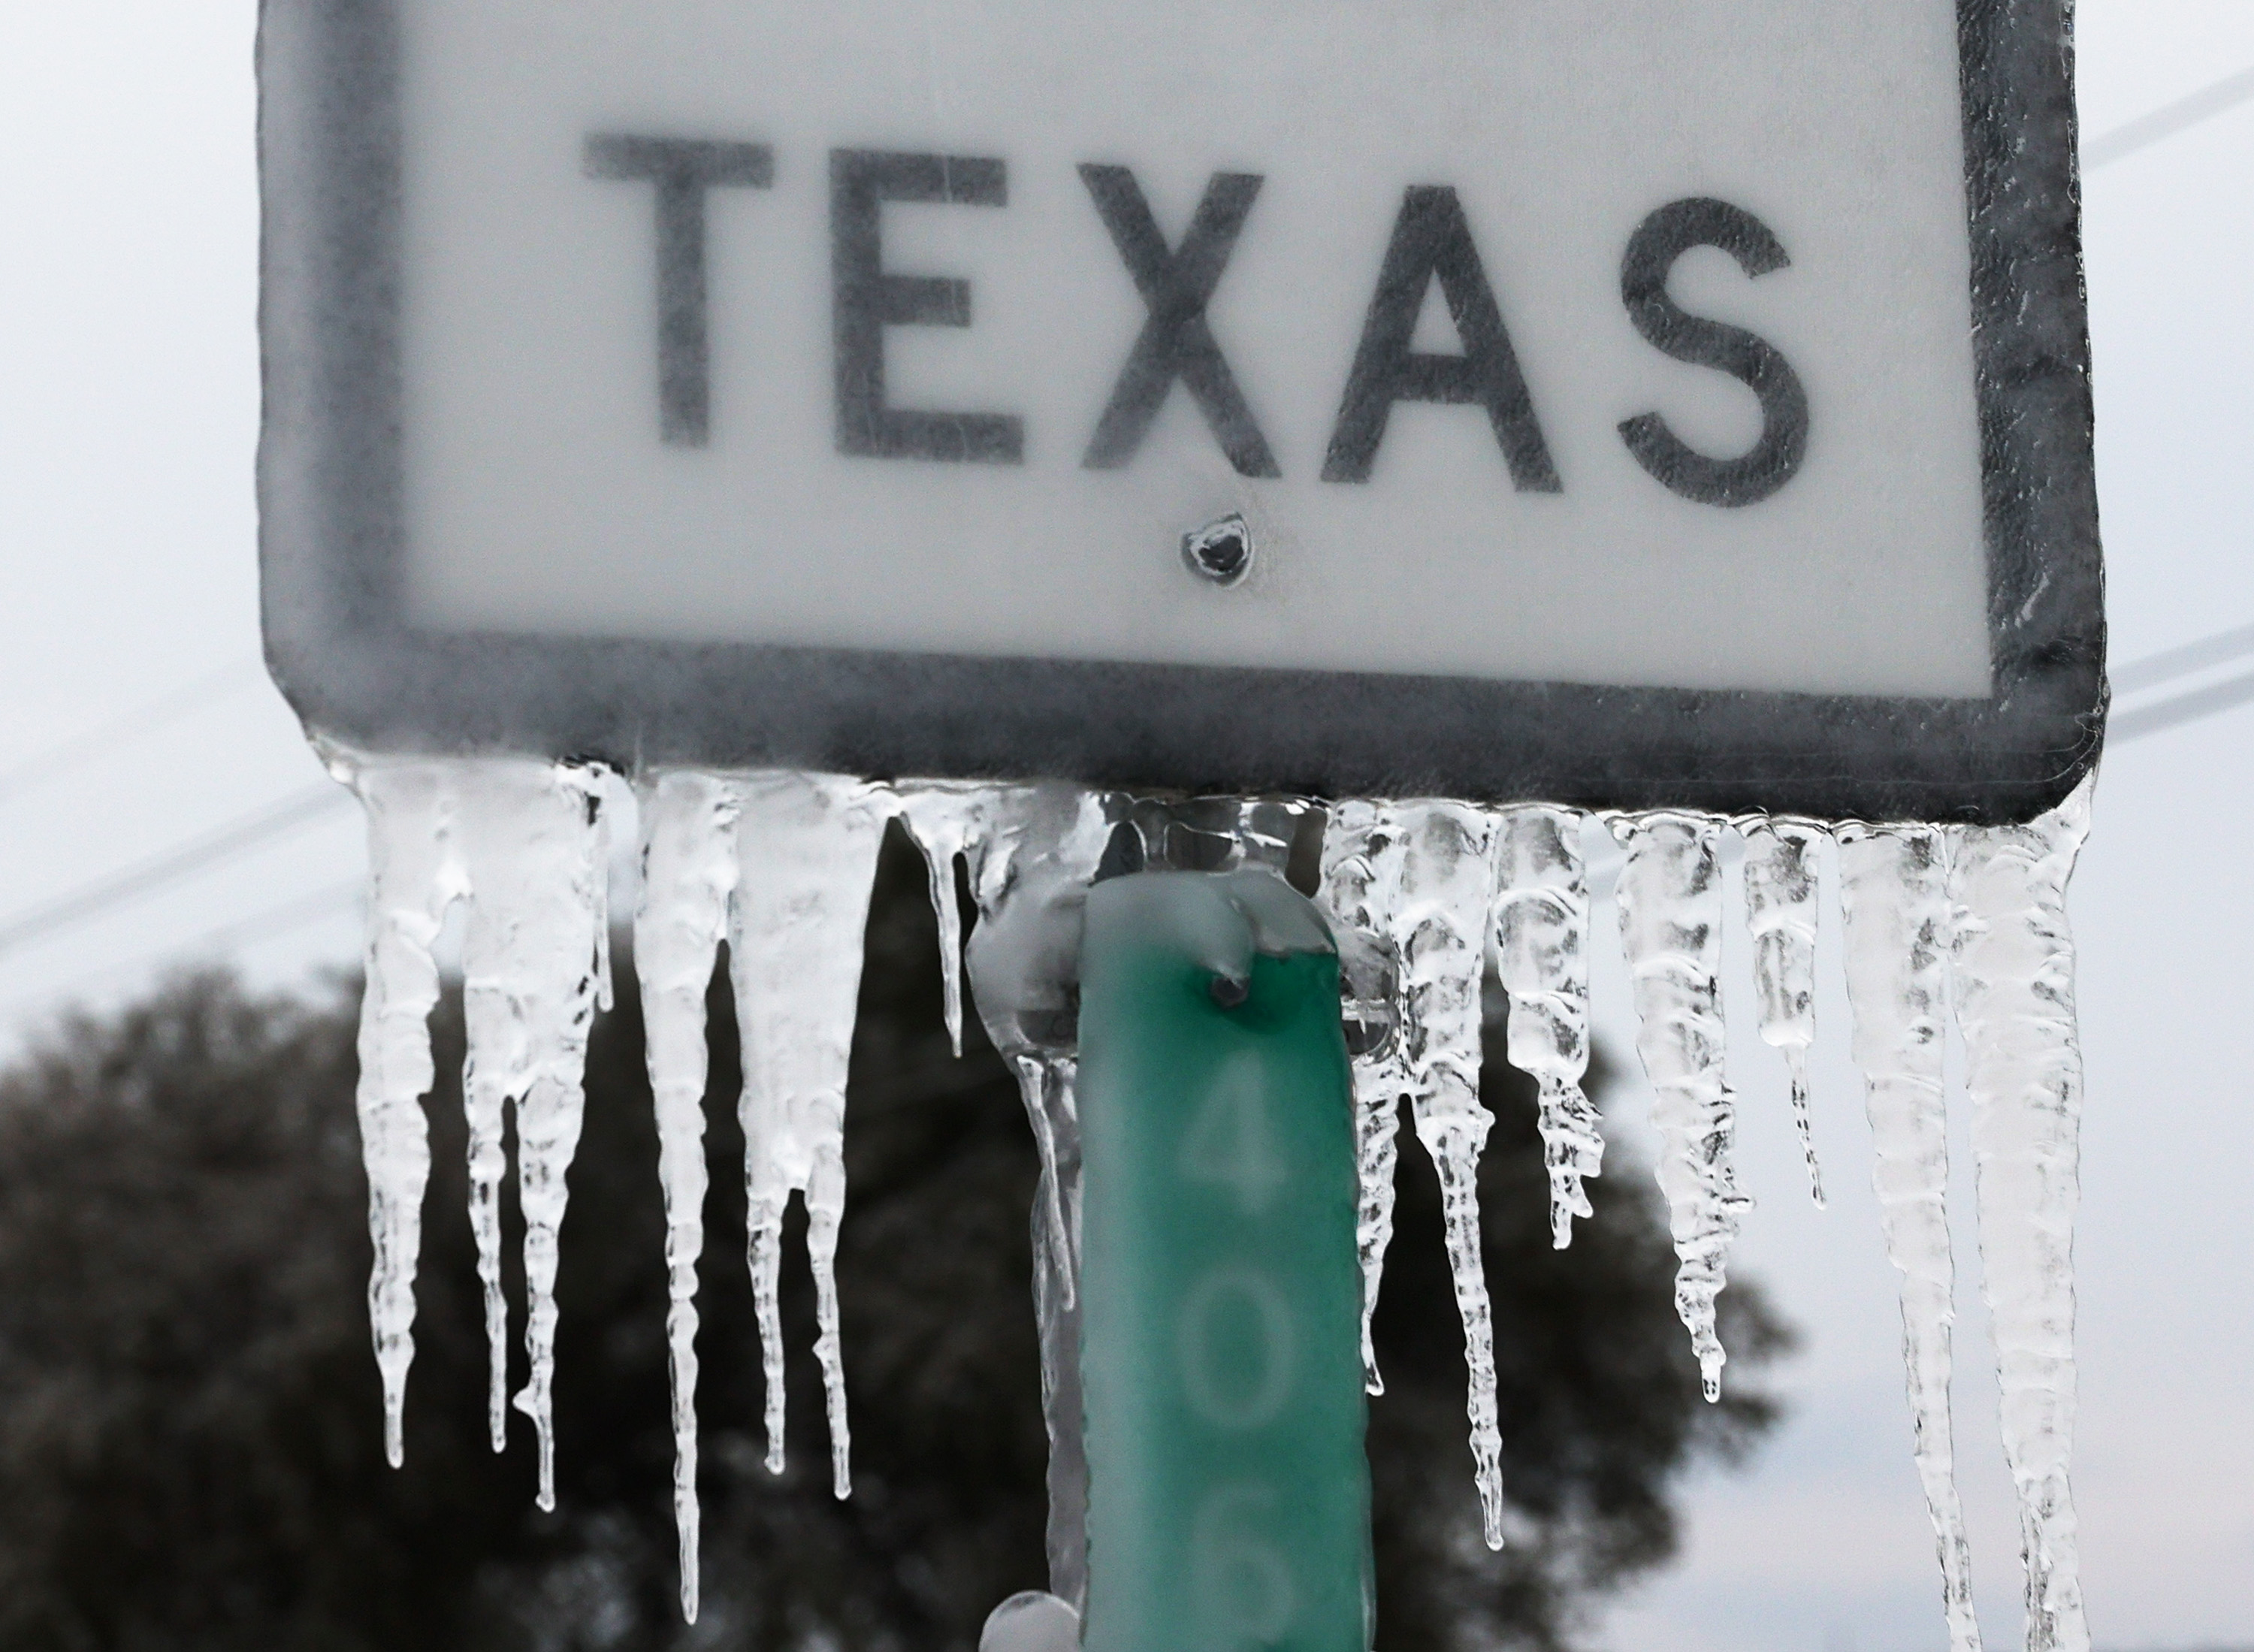 Good Samaritans Help Out Those In Need During Deep Freeze In Texas